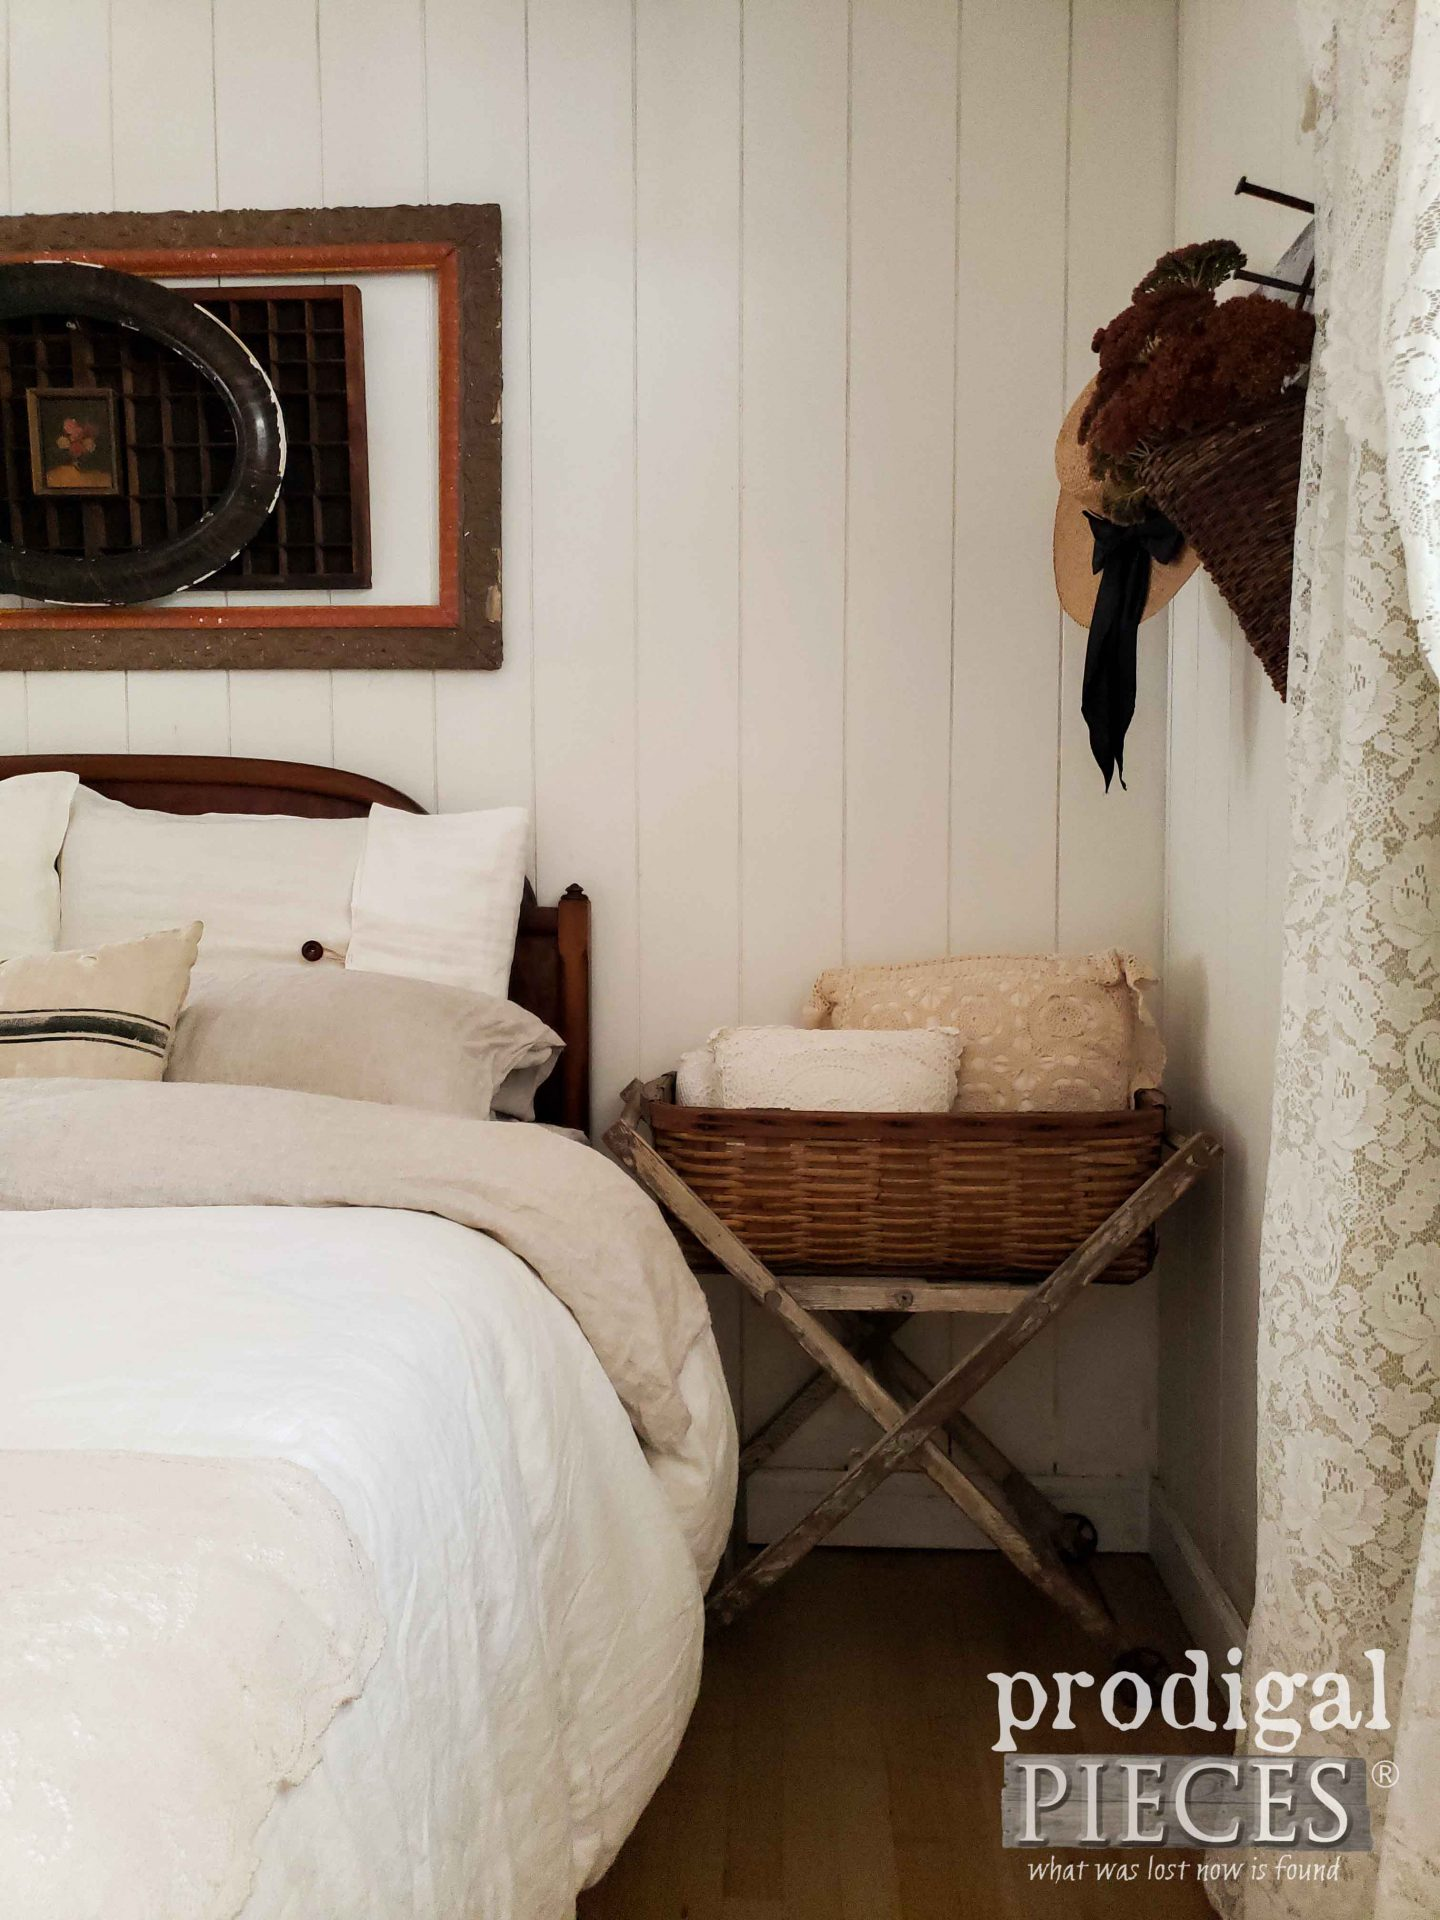 Rustic Farmhouse Bedroom Decorated for Autumn by Larissa of Prodigal Pieces | prodigalpieces.com #prodigalpieces #farmhouse #bedroom #autumn #home #homedecor